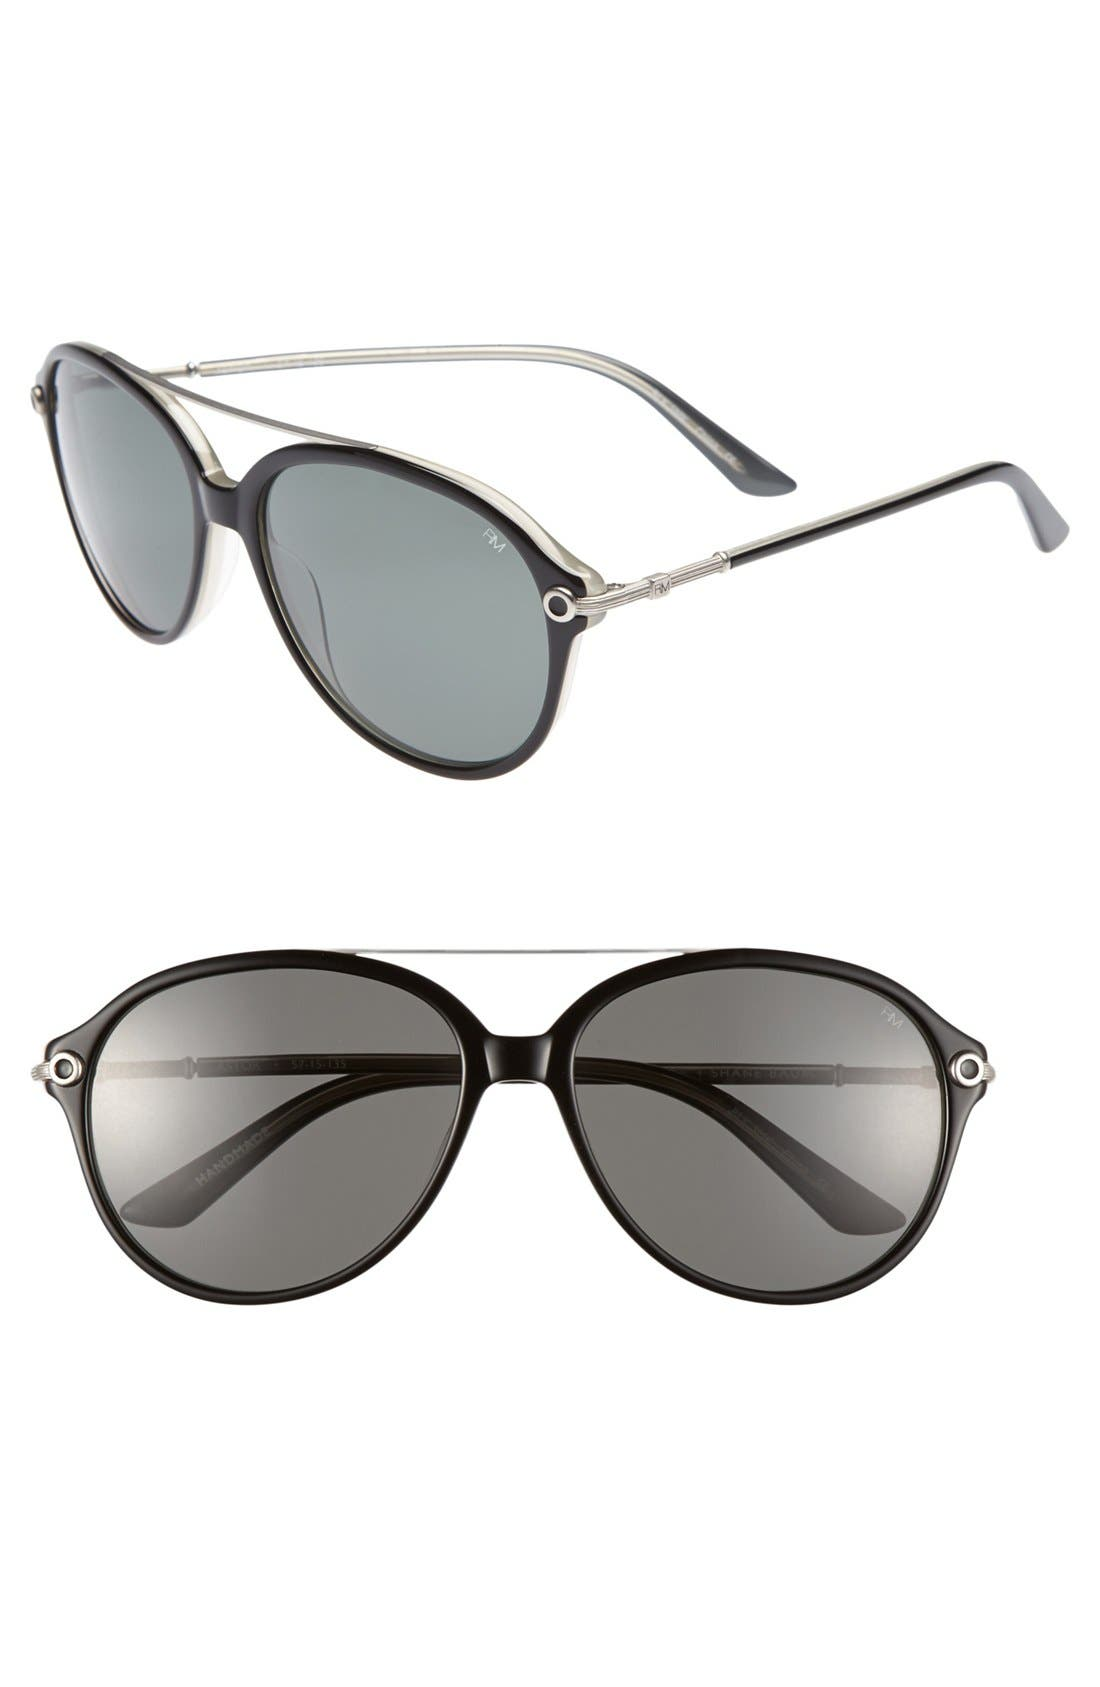 Main Image - Rebecca Minkoff 'Astor' 57mm Sunglasses